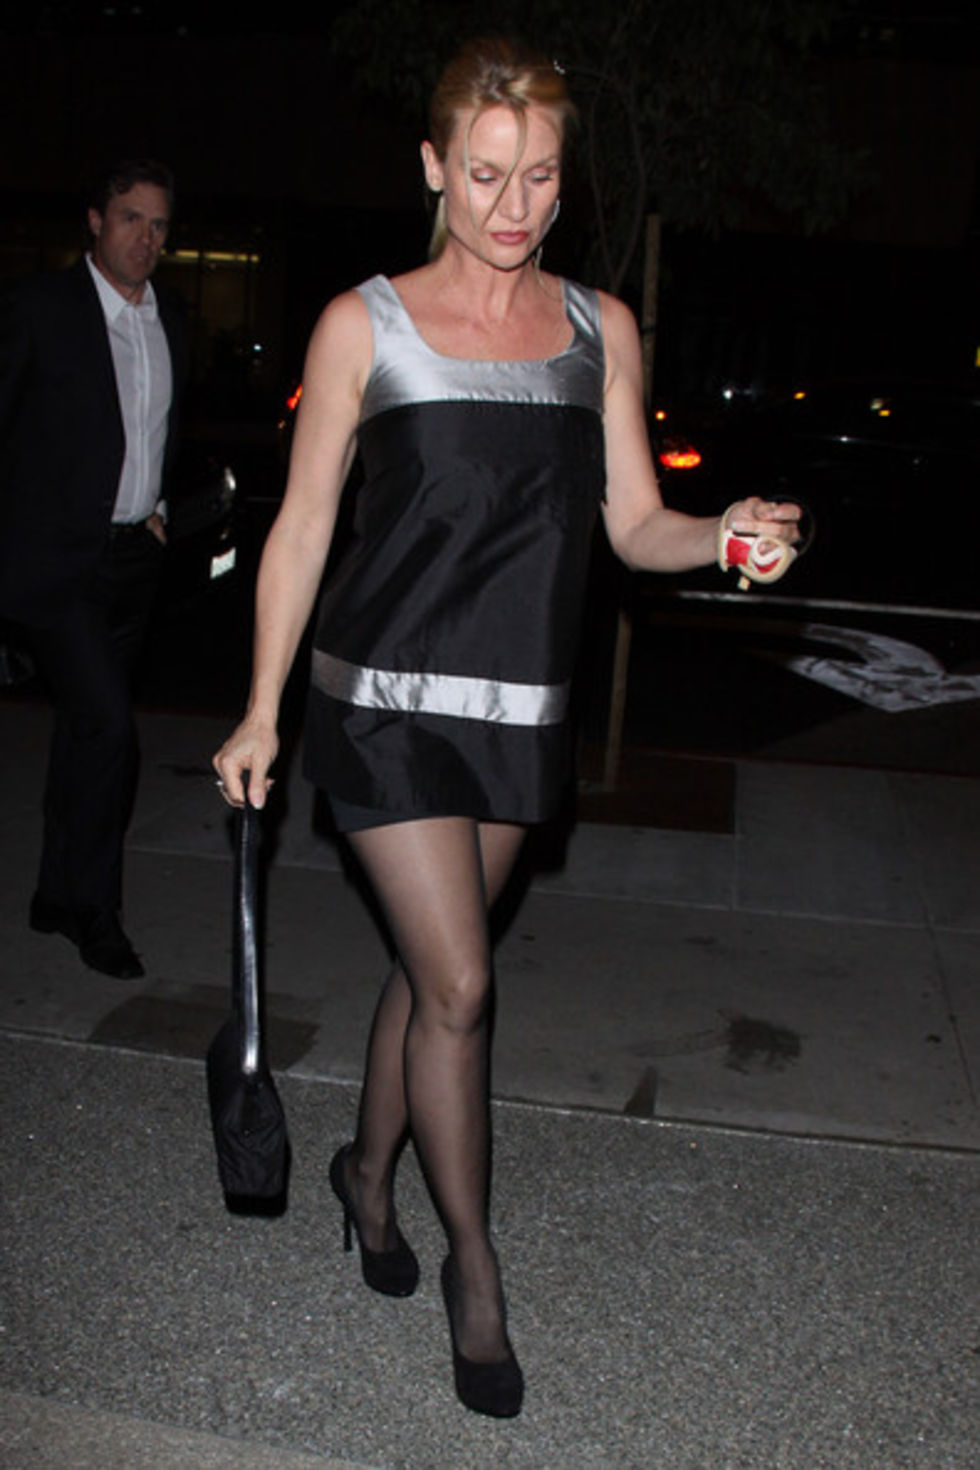 Black dress hollywood - Nicollette Sheridan In Black Dress At Boa Steakhouse In Hollywood 07 Full Size